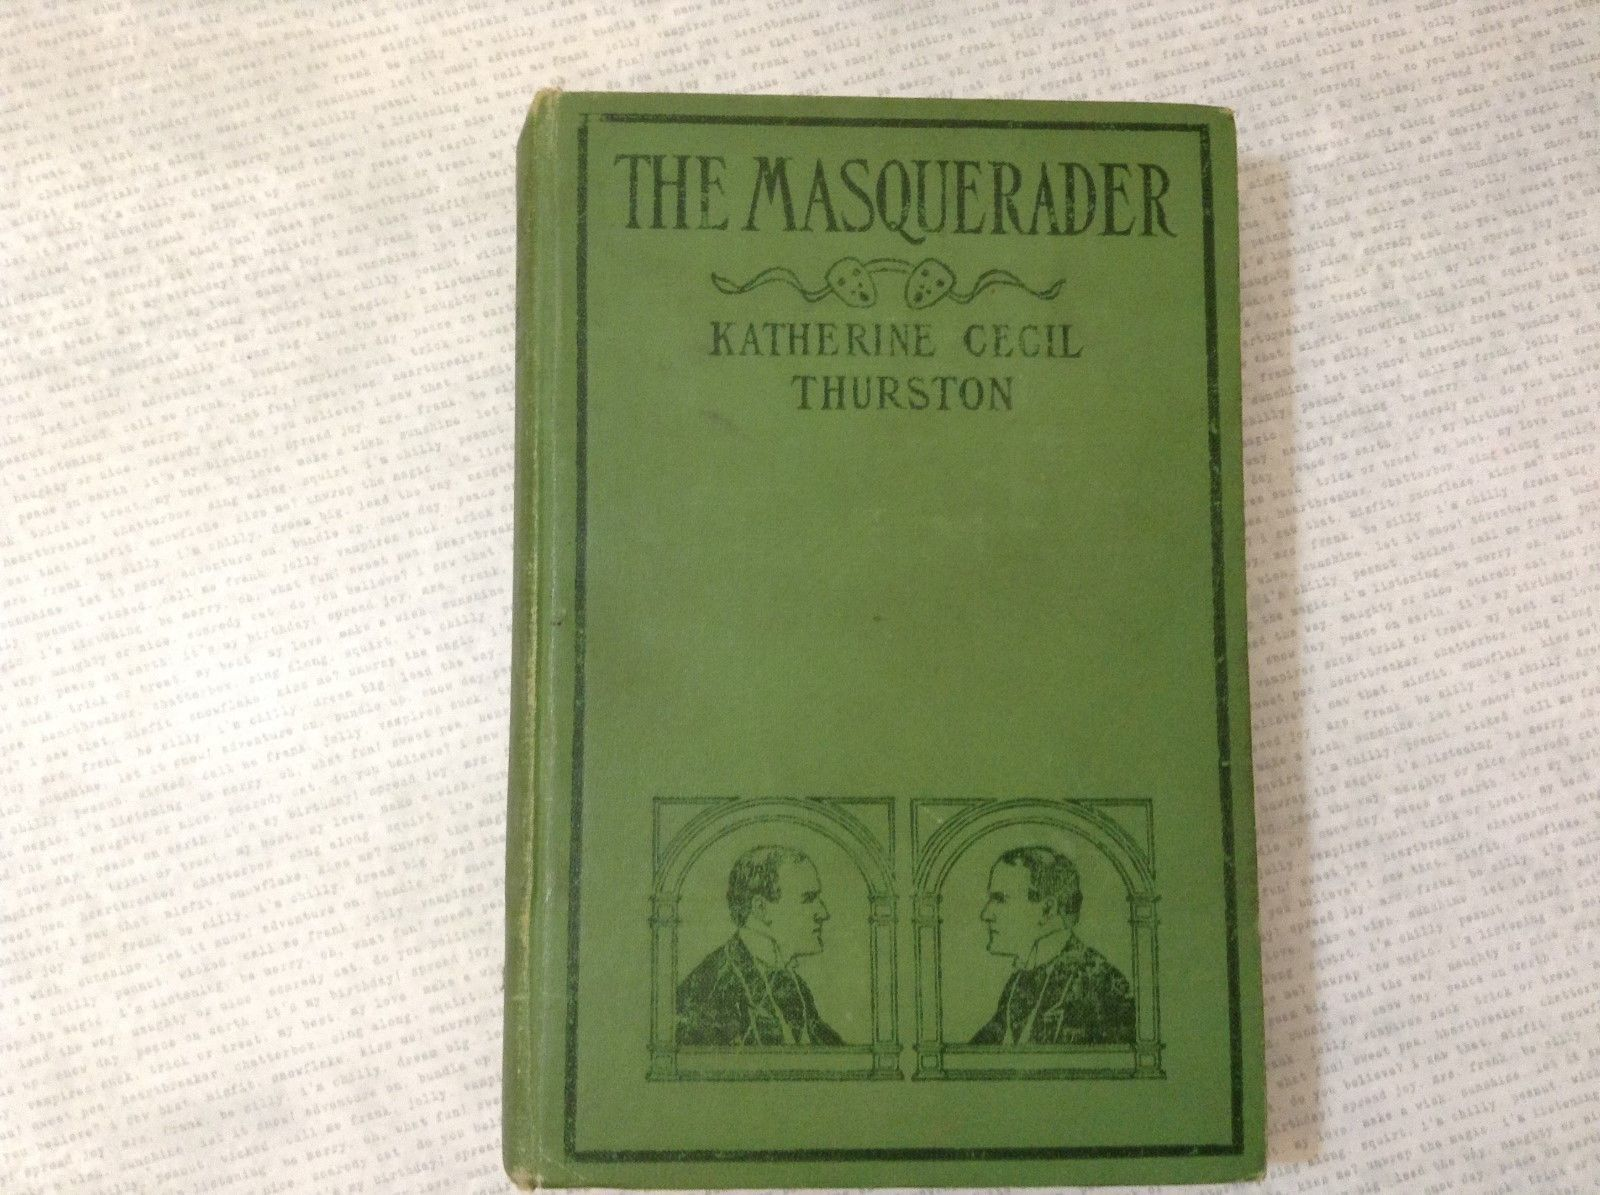 The Masquerader by Katherine Cecil Thurston Antique Hardcover